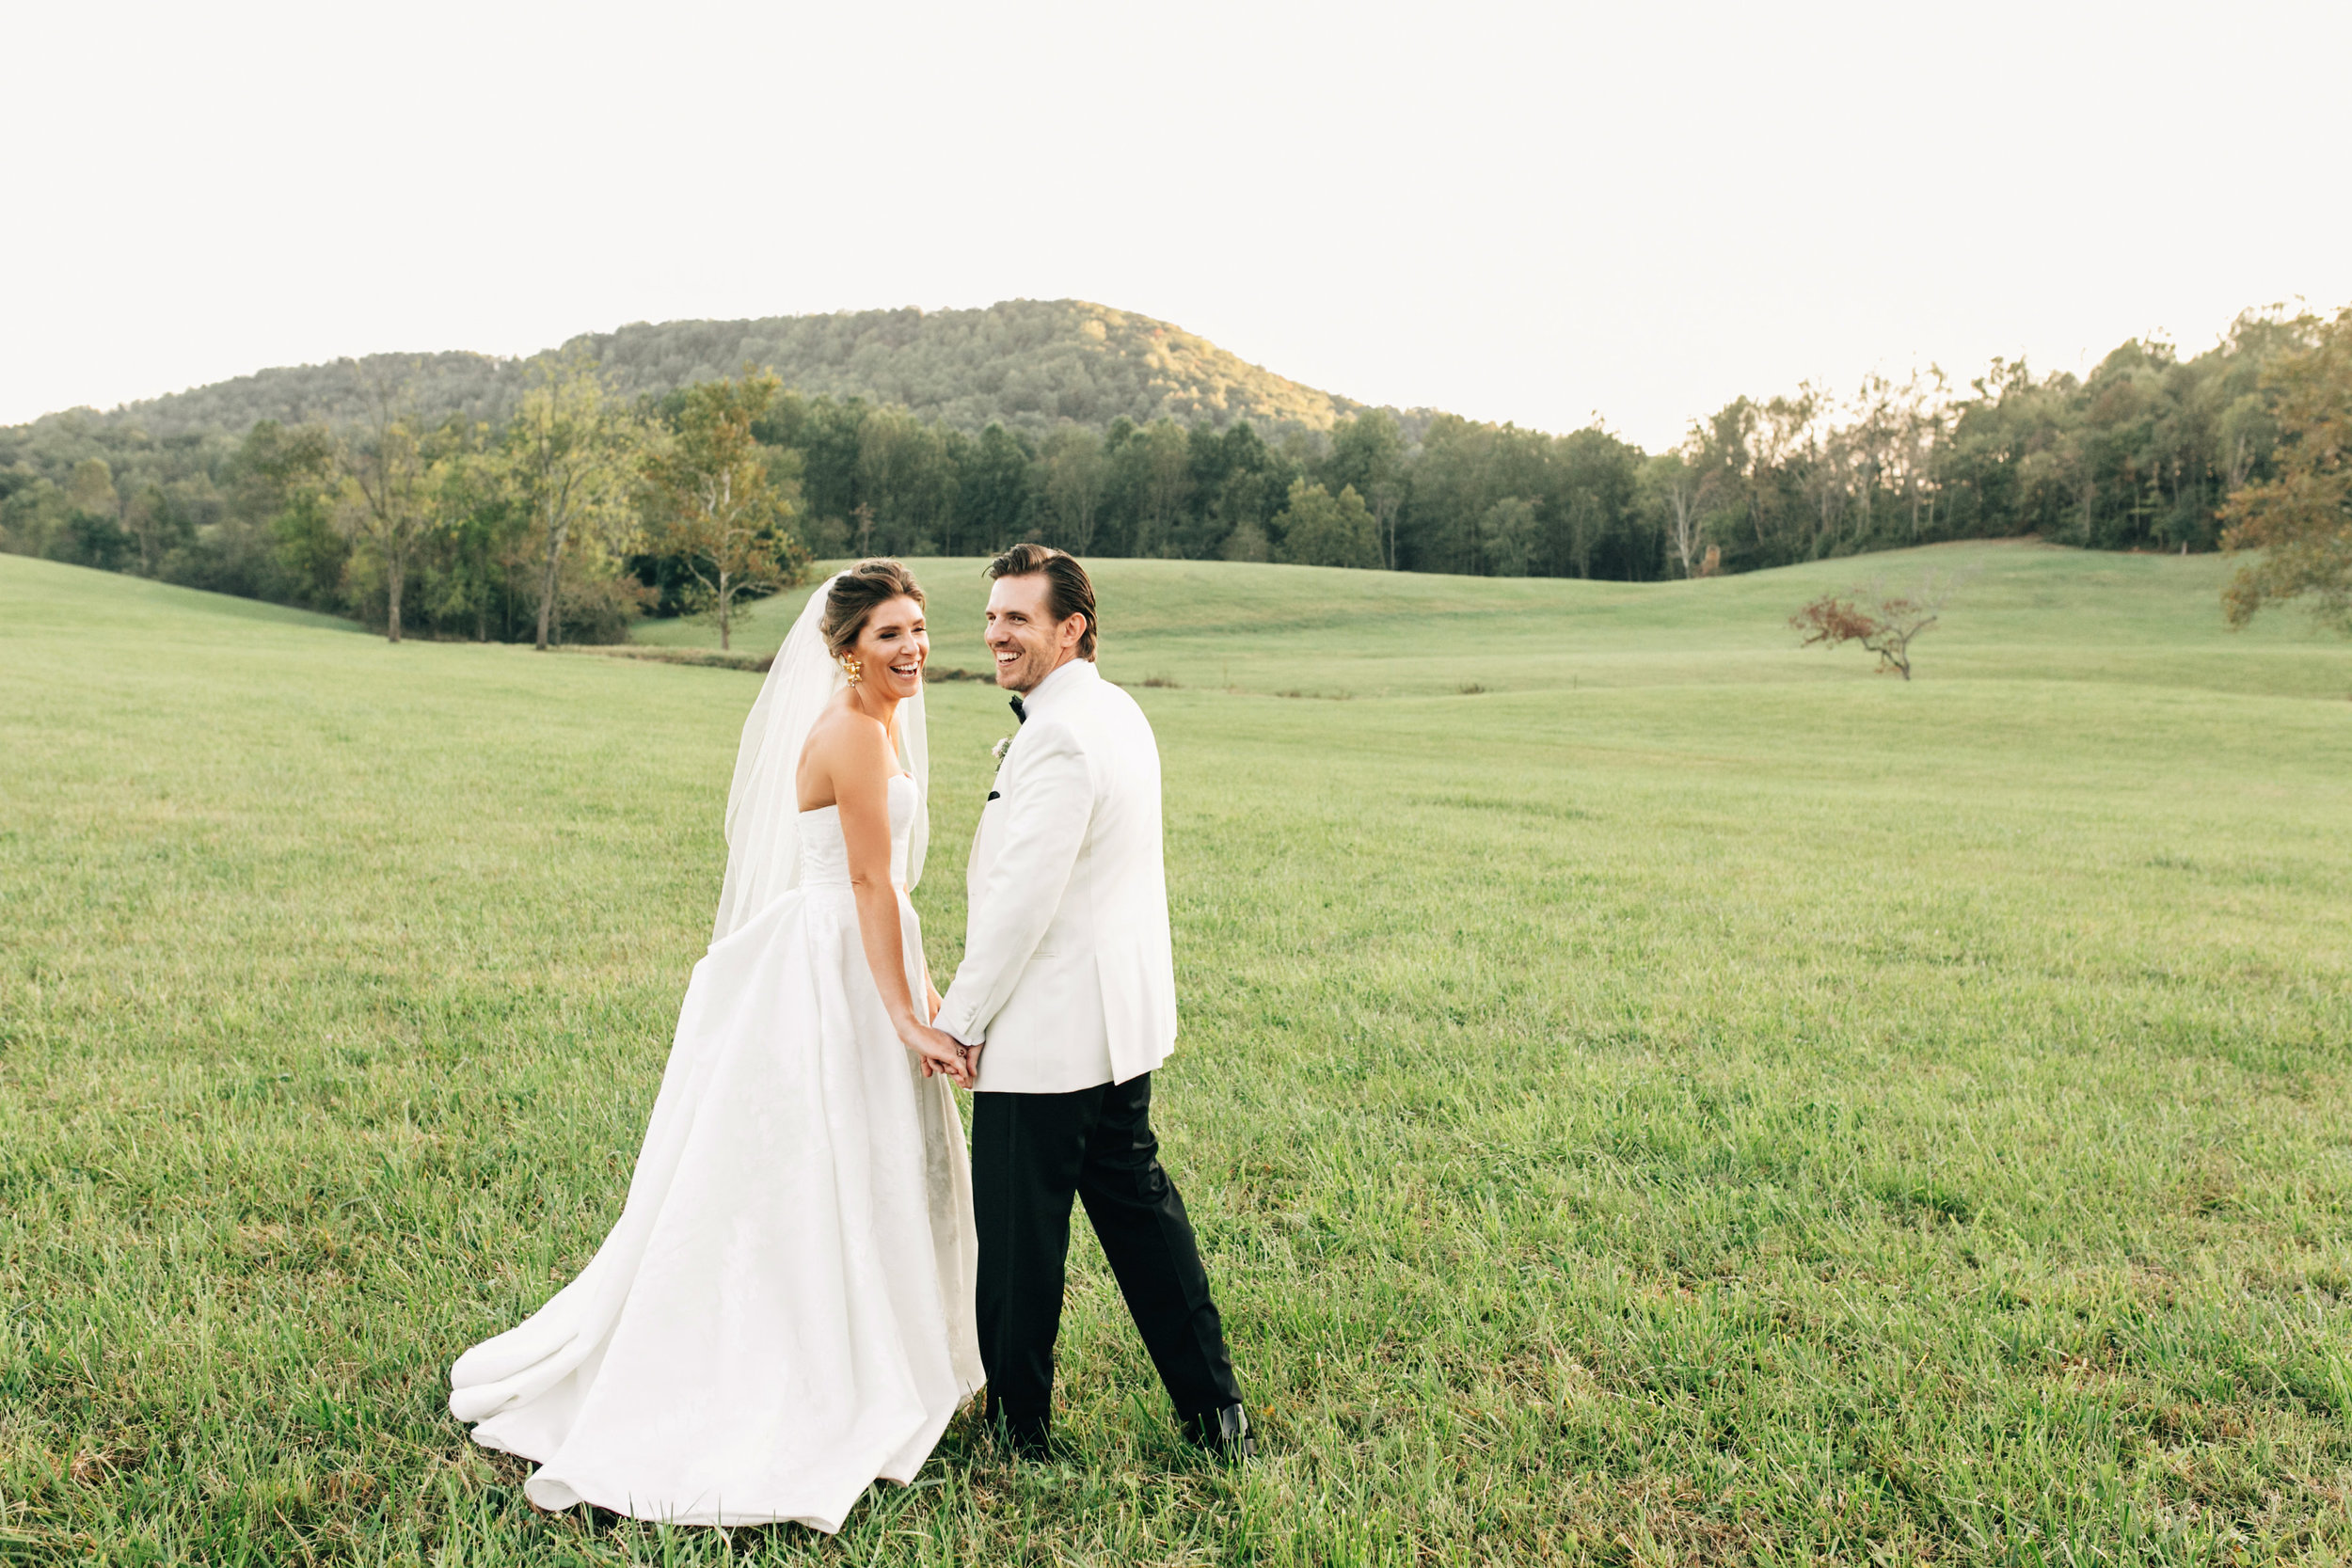 KatieStoopsPhotography-charlottesville wedding-farm wedding34.jpg